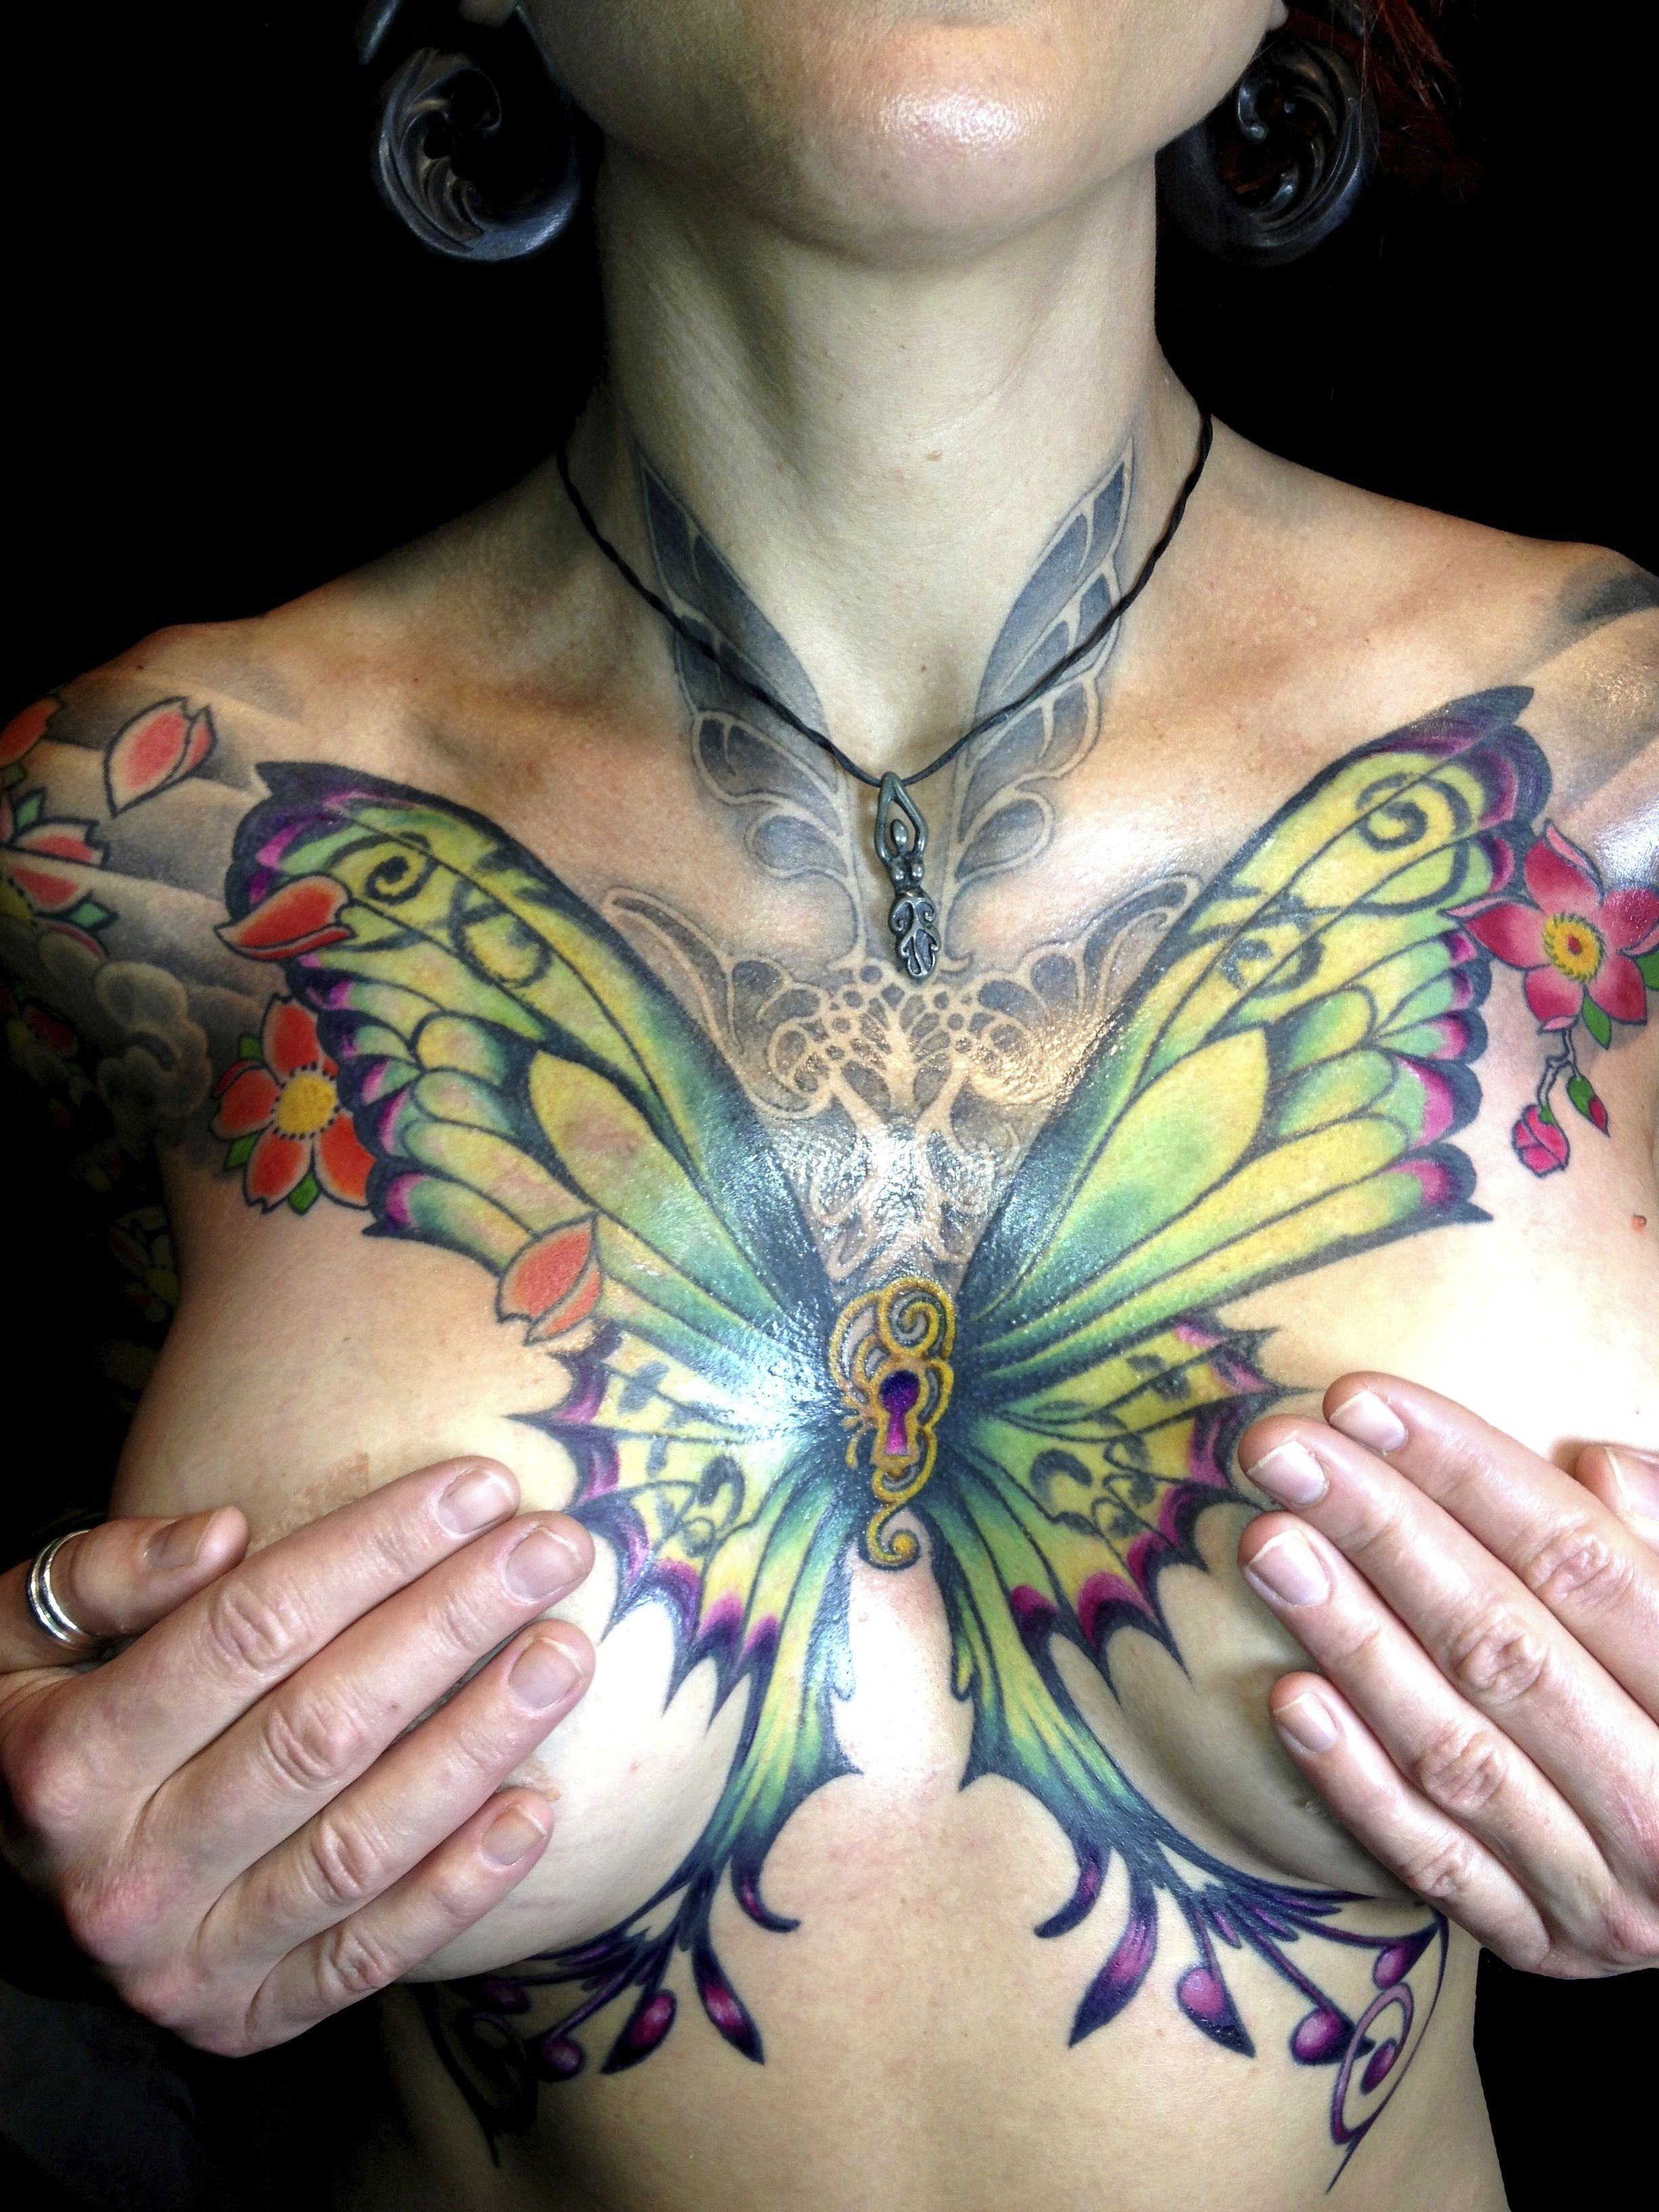 d991243f83701 tattoo by michael norris of hubtattoo in austin texas #chest-tattoo #sexy- tattoo #butterfly-tattoo